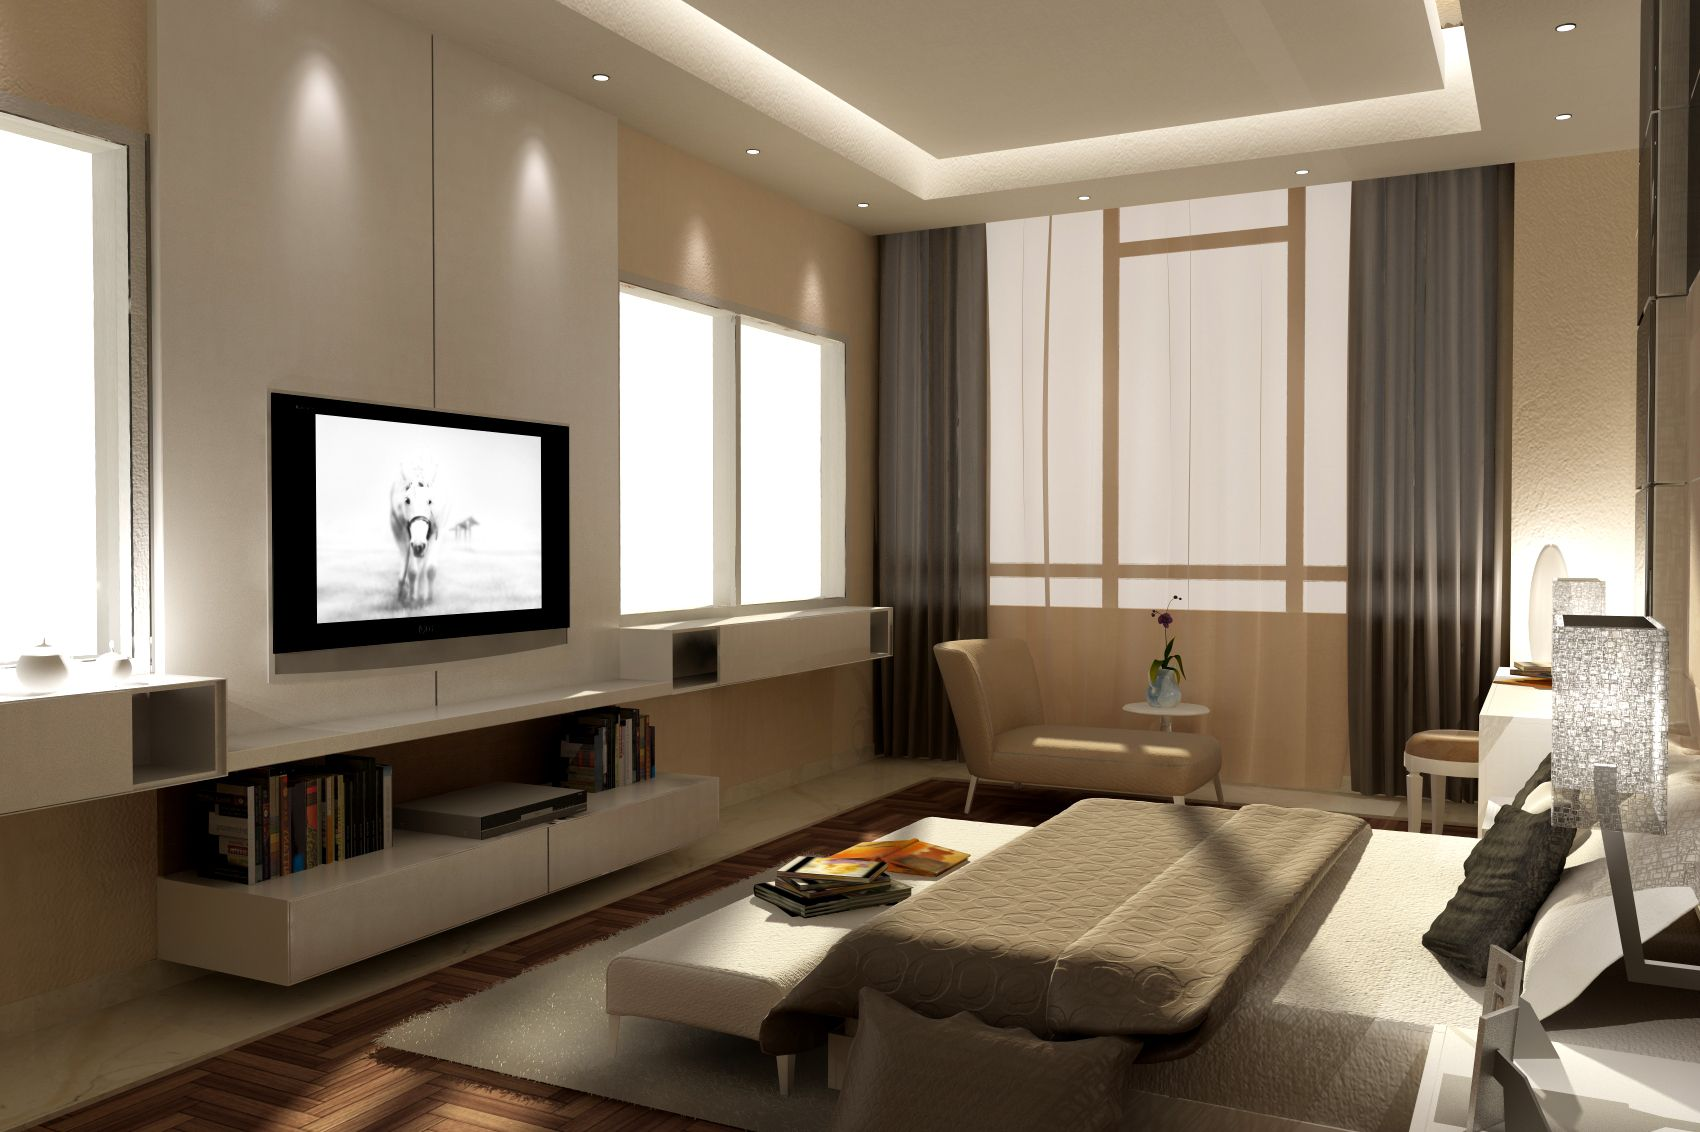 Bedroom modern bedroom interior design 3d max 3d for Interior designs modern